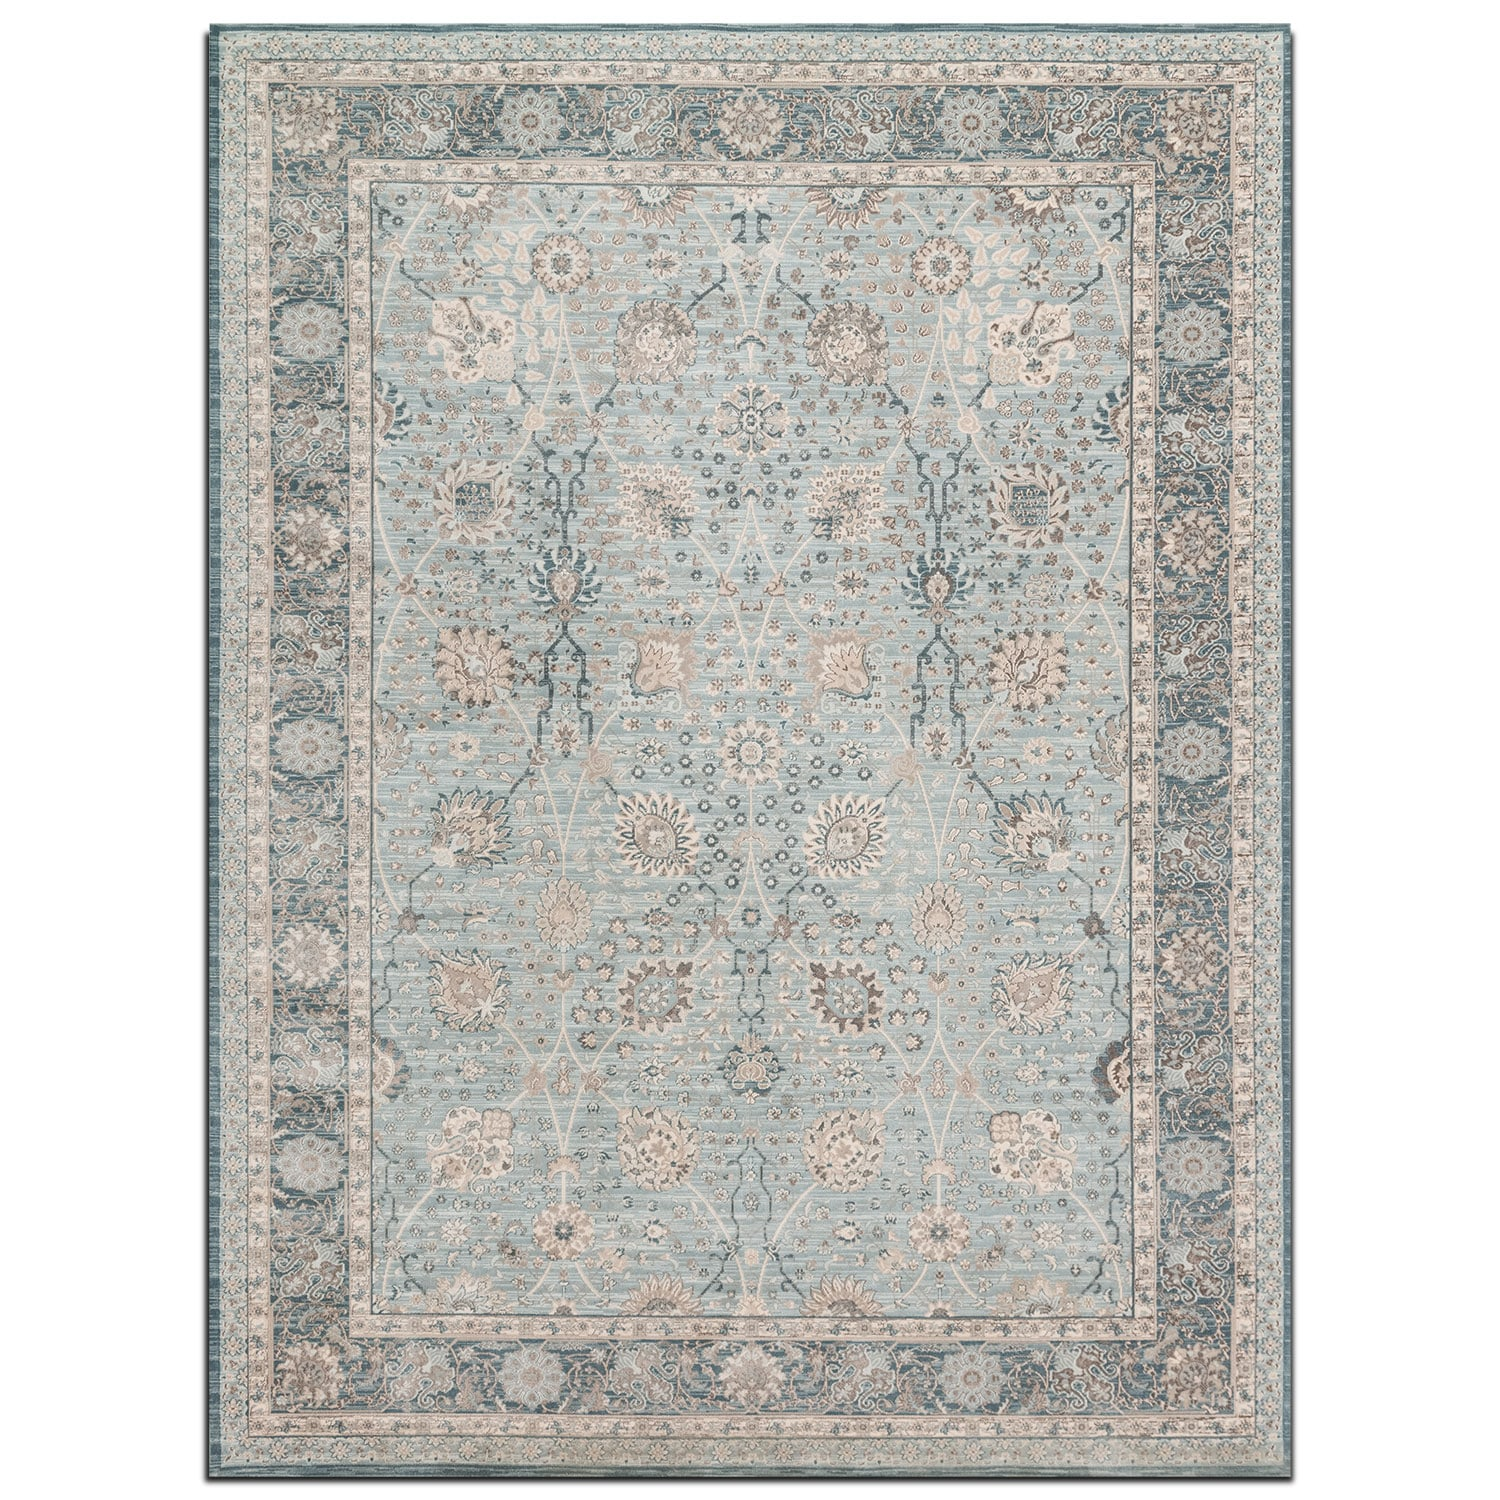 Rugs - Ella Rose 12' x 15' Rug - Light and Dark Blue